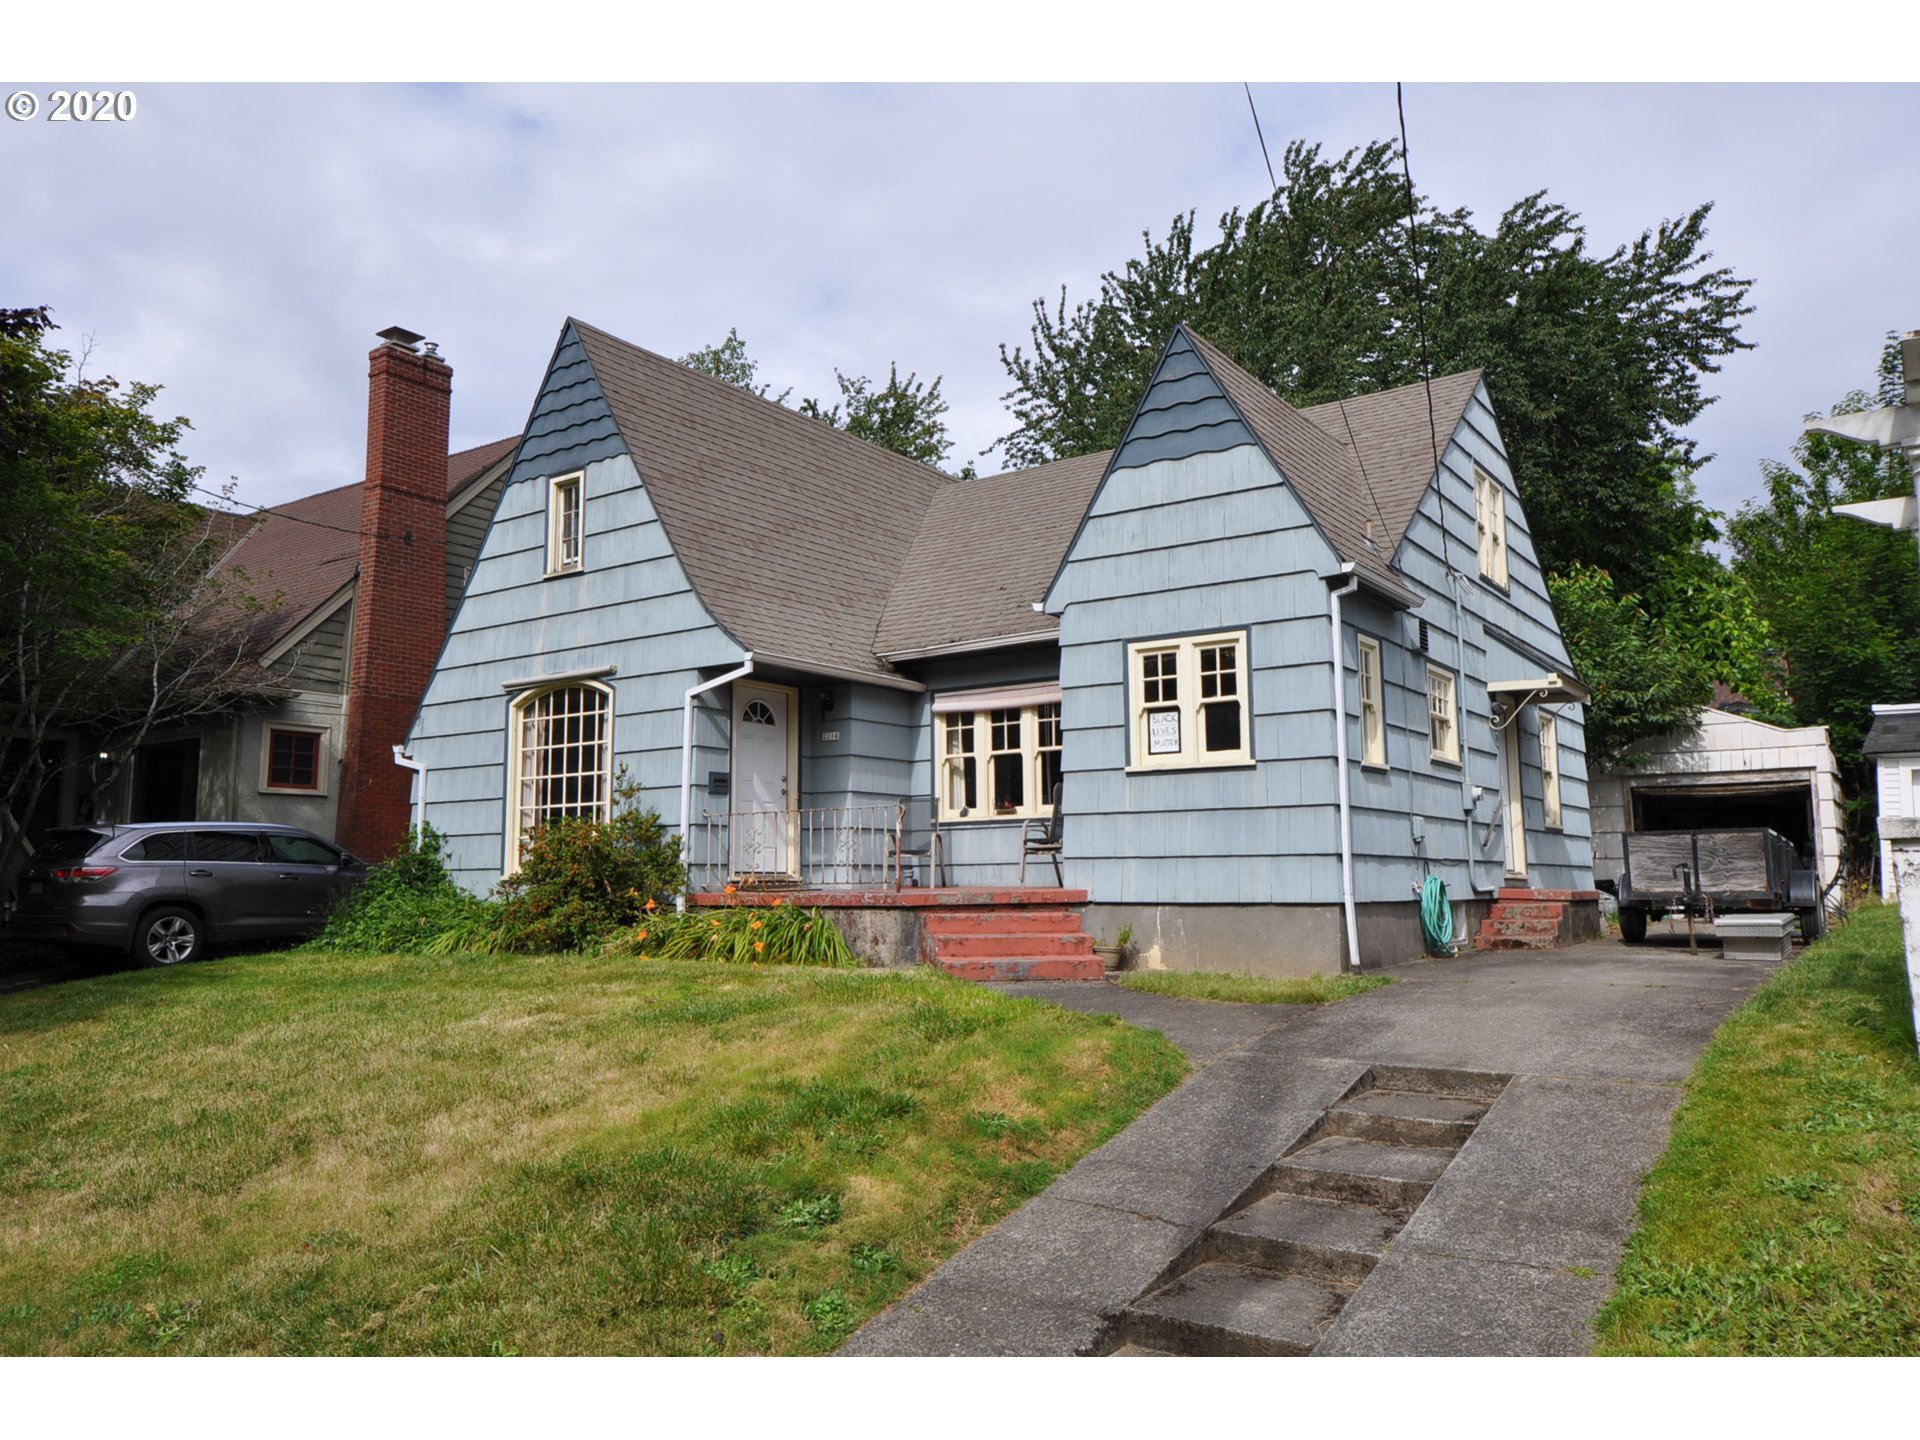 Looking for an affordable starter home in one of Portland's most coveted neighborhoods? Value a strong community boasting a top rated elementary & freshly remodeled high school? Look no further! This charming Tudor-style home located in the popular Grant Park neighborhood is your ticket in. Featuring formal living & dining rooms, hardwoods throughout, wood burning fireplace, detached garage & more. Located close-to shopping, eateries, coffee, pharmacy, bank, etc. Won't last long at this price!!! [Home Energy Score = 1. HES Report at https://rpt.greenbuildingregistry.com/hes/OR10185470]